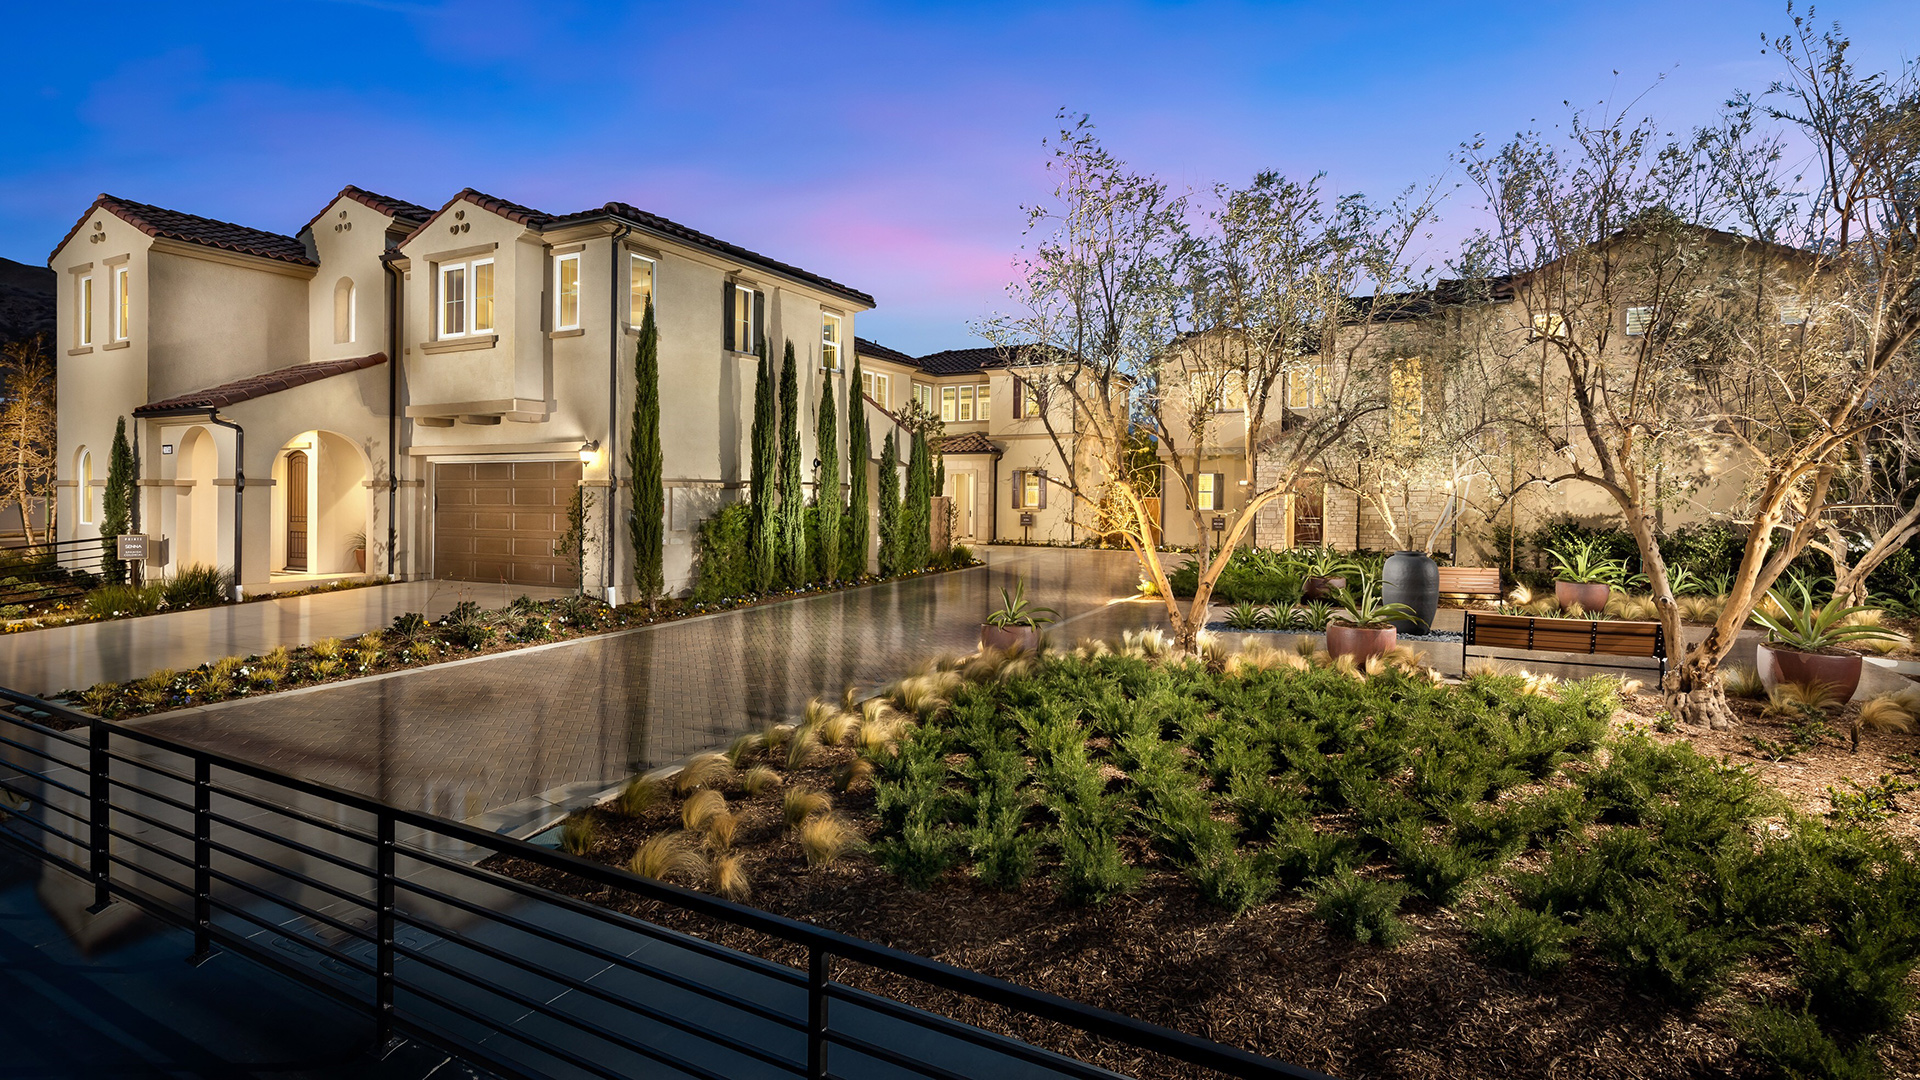 New Luxury Homes For Sale in Porter Ranch, CA | The Canyons